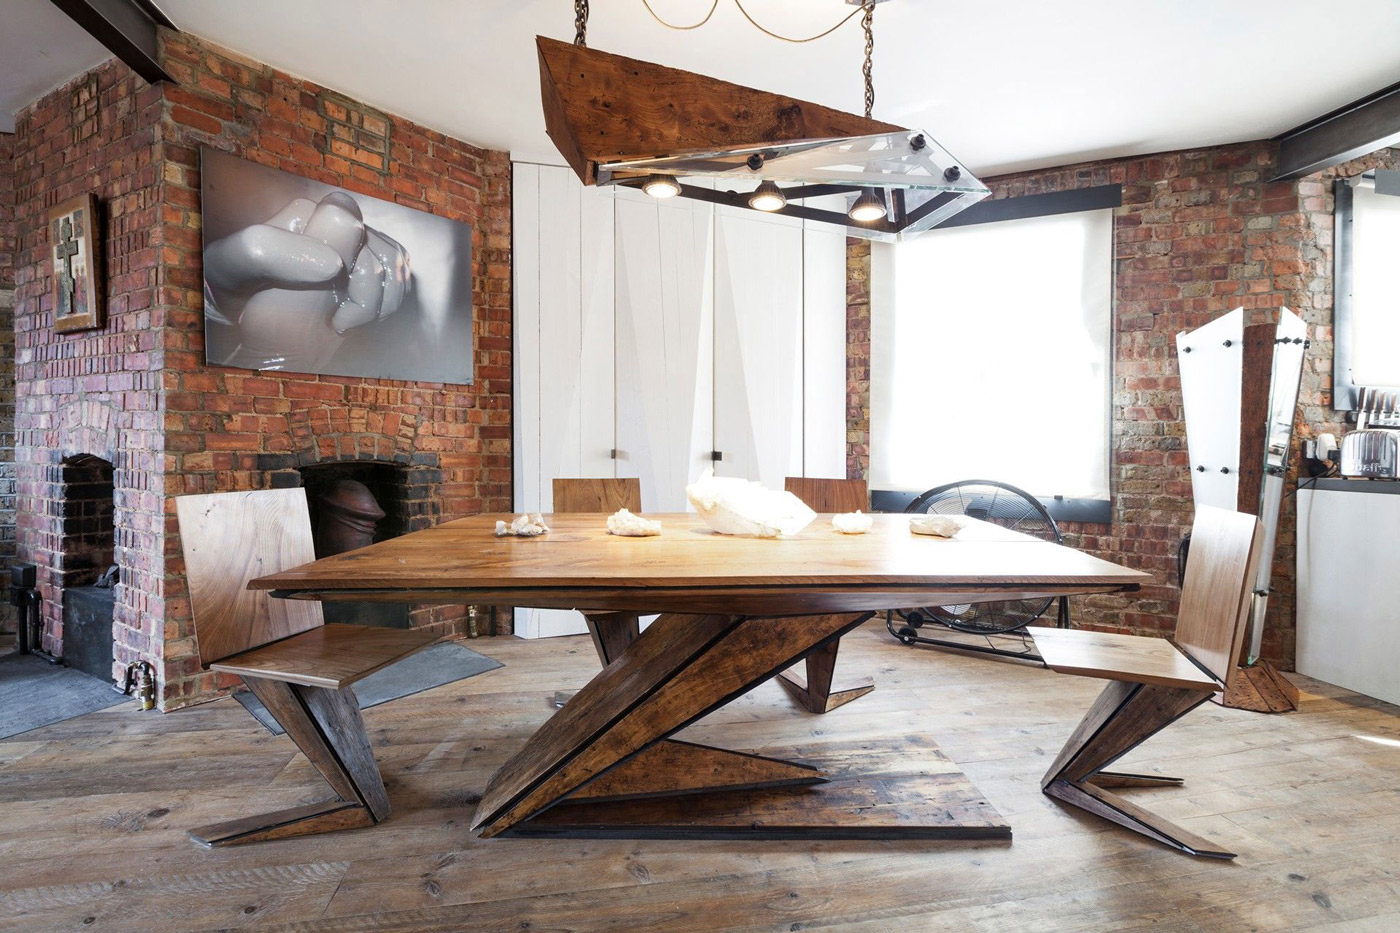 Art, Wooden Lighting, Dining Table, Wooden Flooring, Brick Walls, Archer Street Apartment in London, England